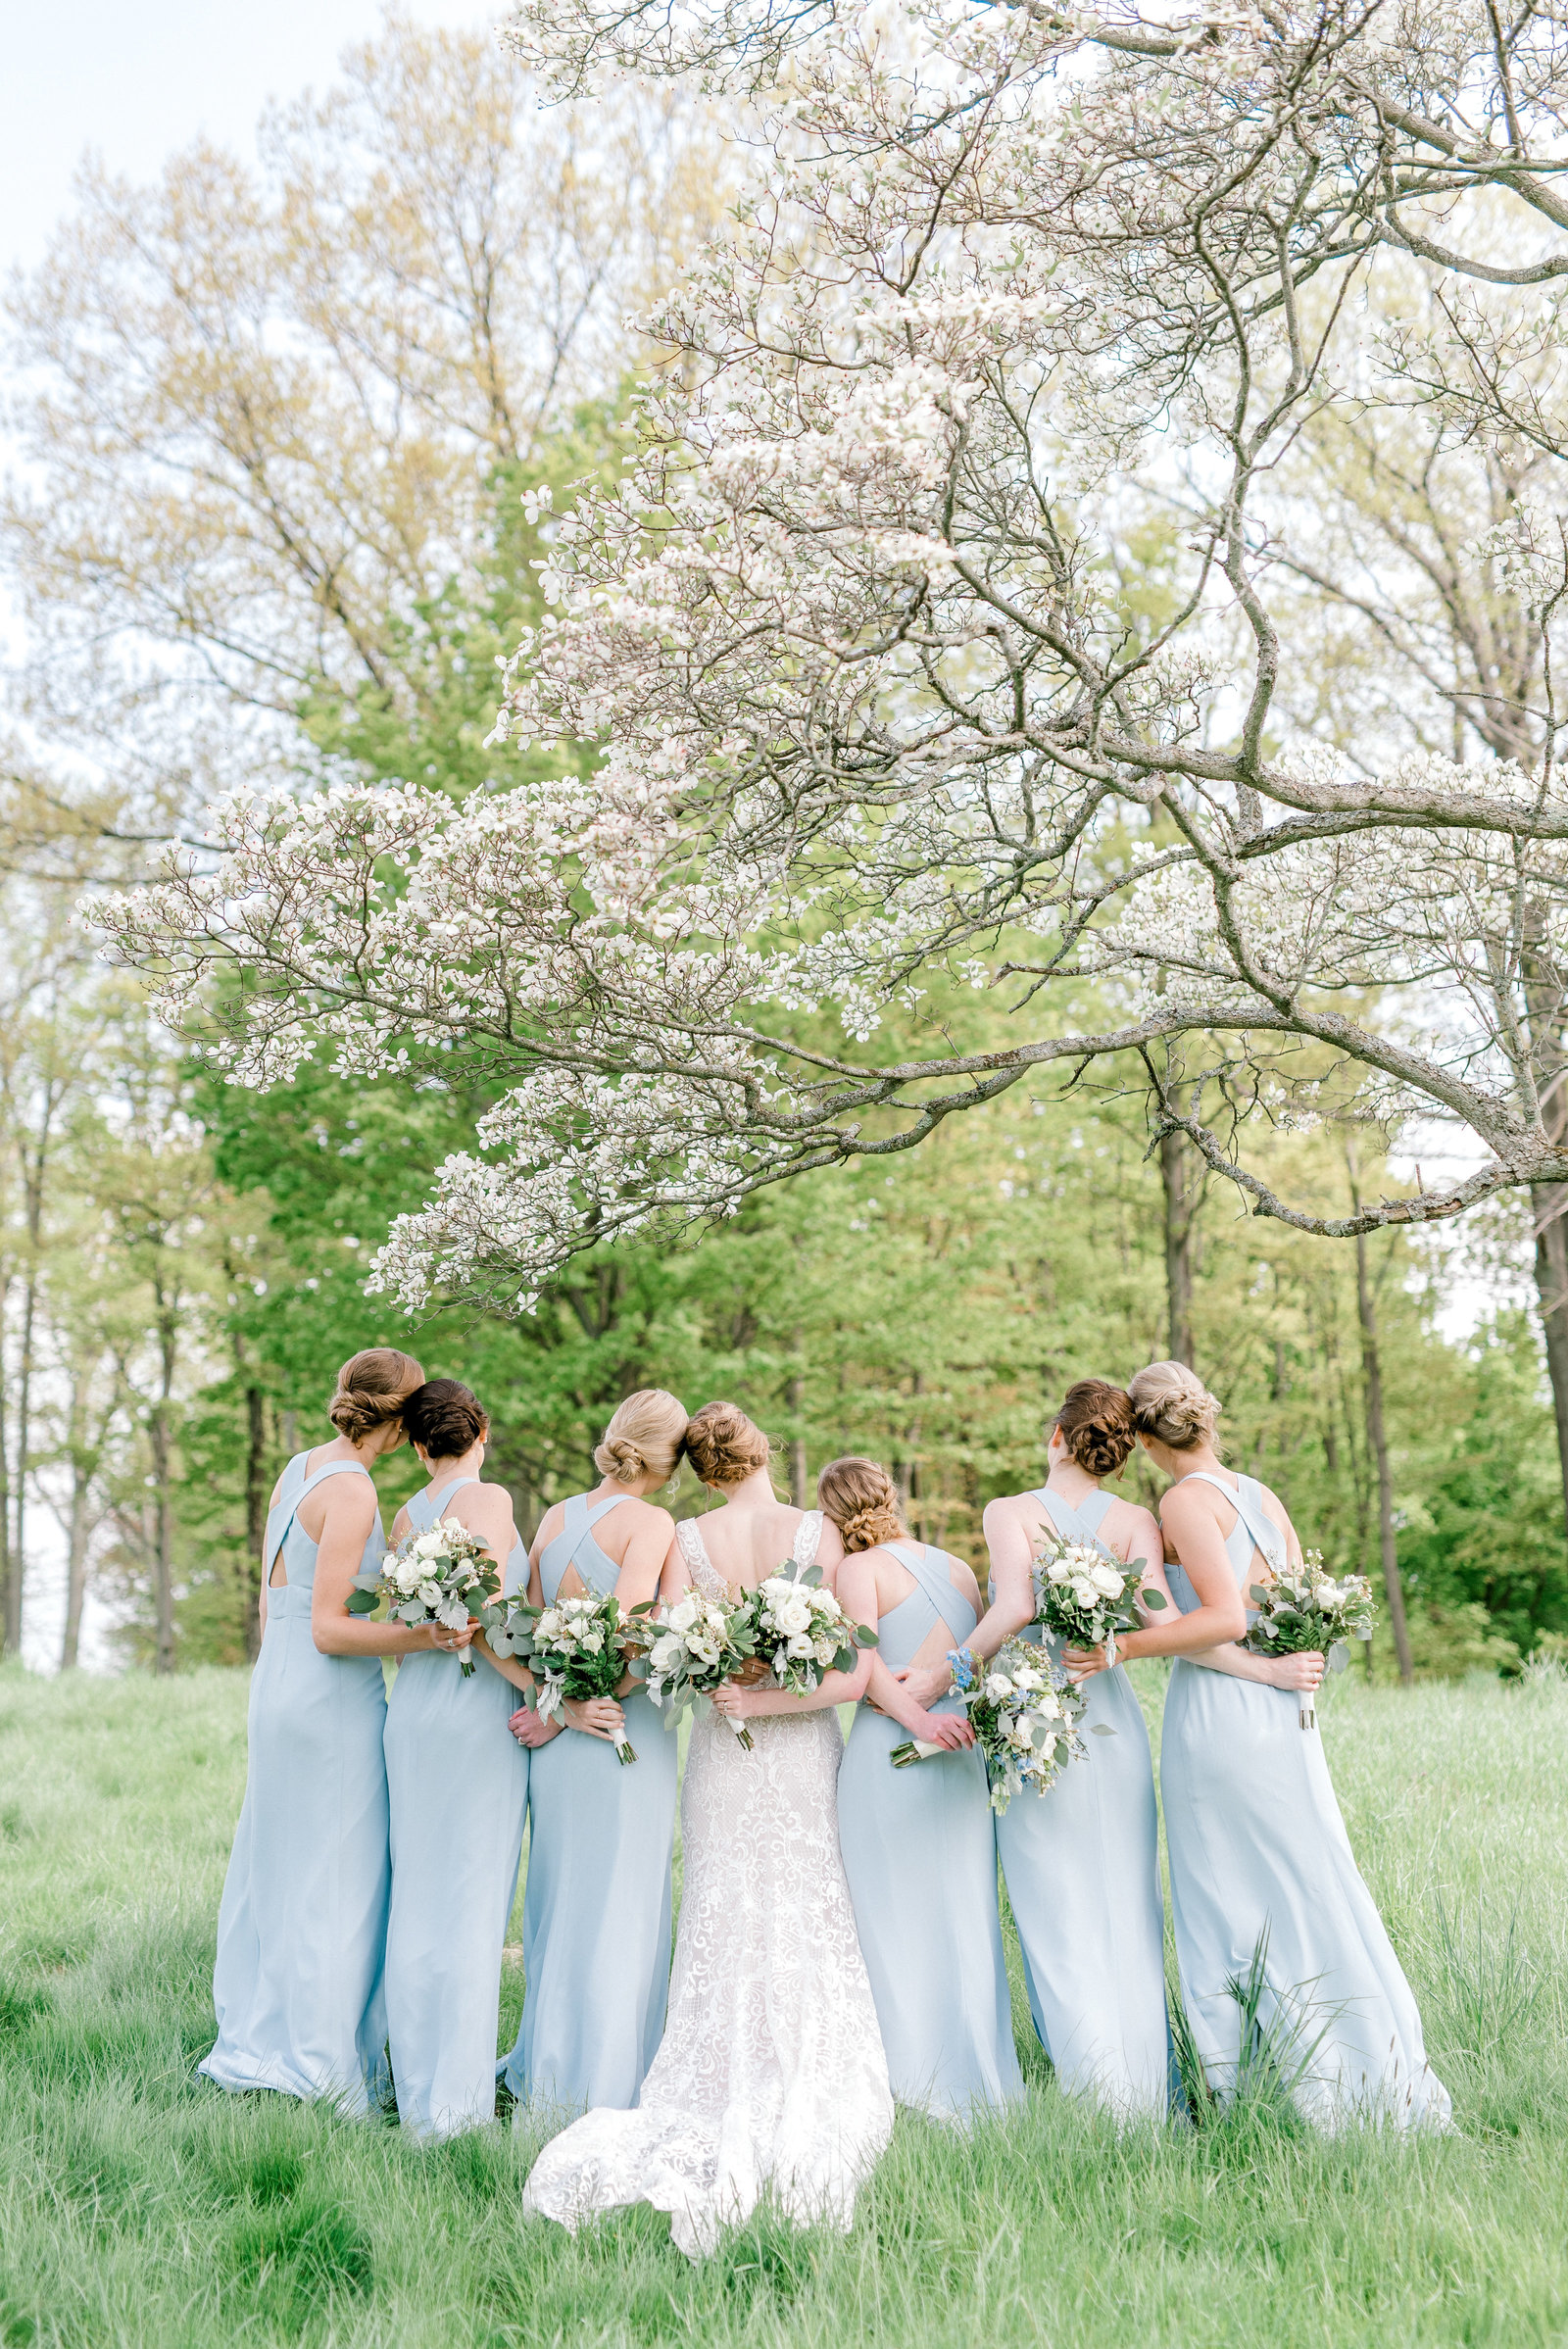 Spring Wedding in Erie PA with gorgeous blue dresses and flowering trees